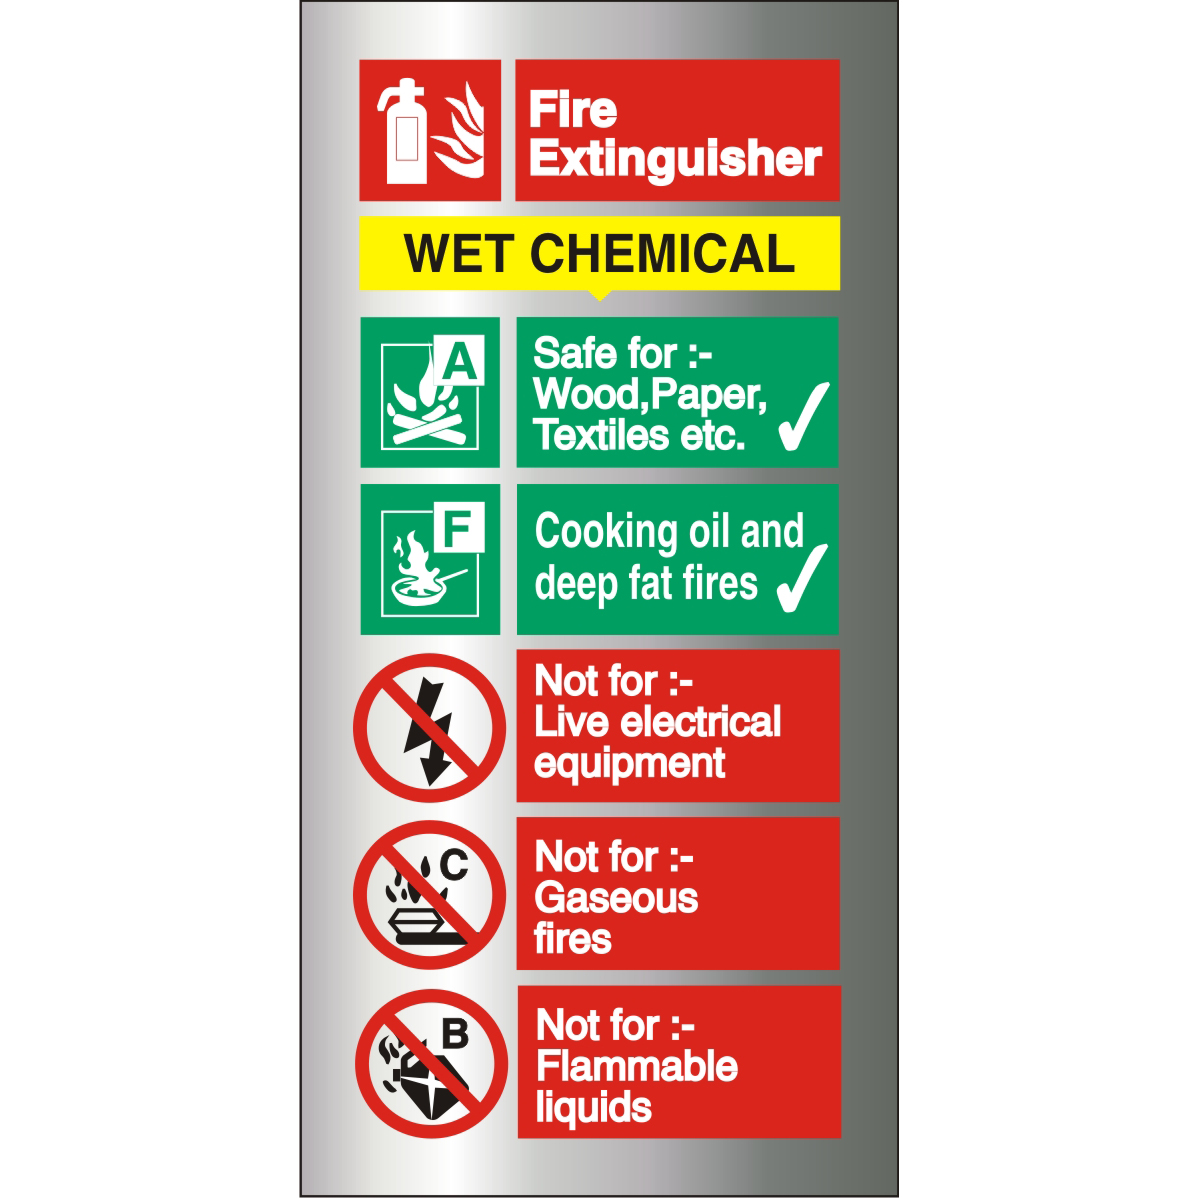 Brushed Alu Sign 100x200 1.5mm S/A Fire ExtinguisherWet Chem Ref BAFF100100x200 Up to 10 Day Leadtime